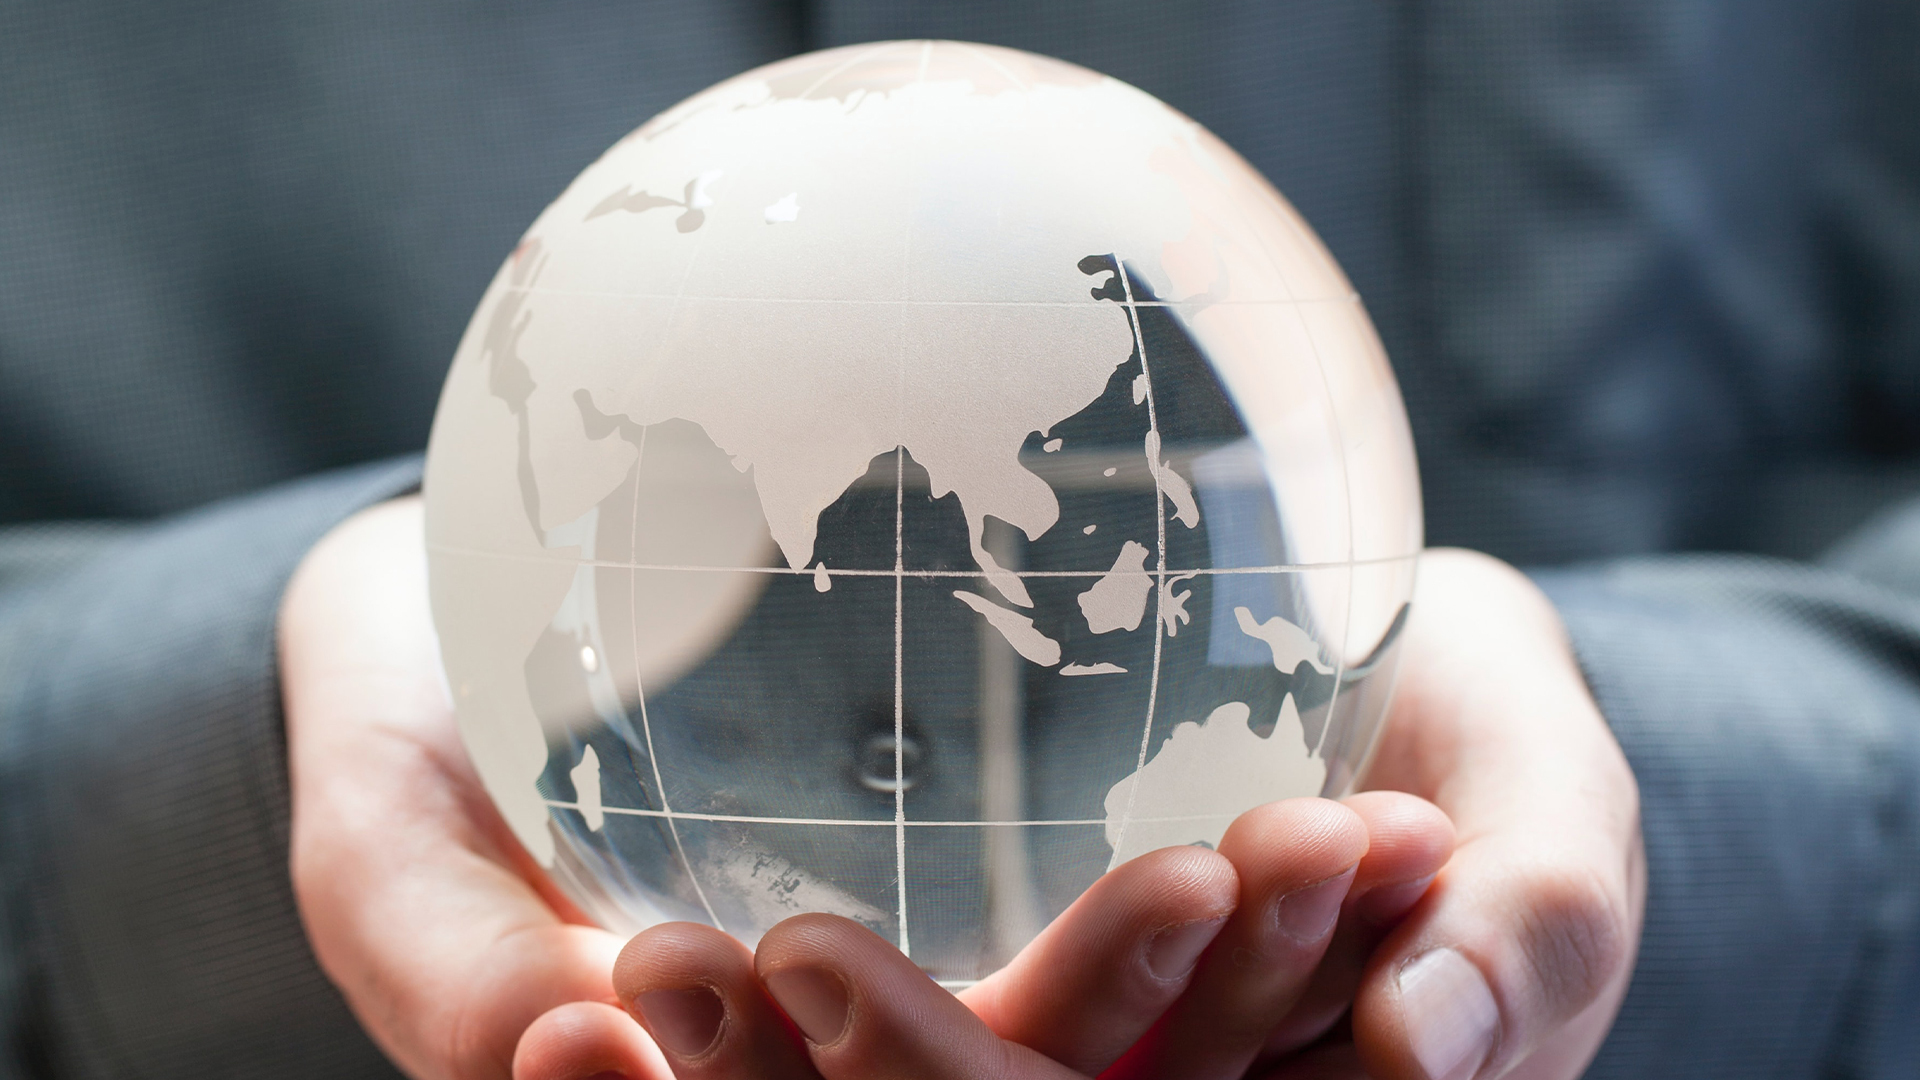 GOING GLOBAL DISRUPTING THE CREDIT BUILDING WORLD ONE COUNTRY AT A TIME